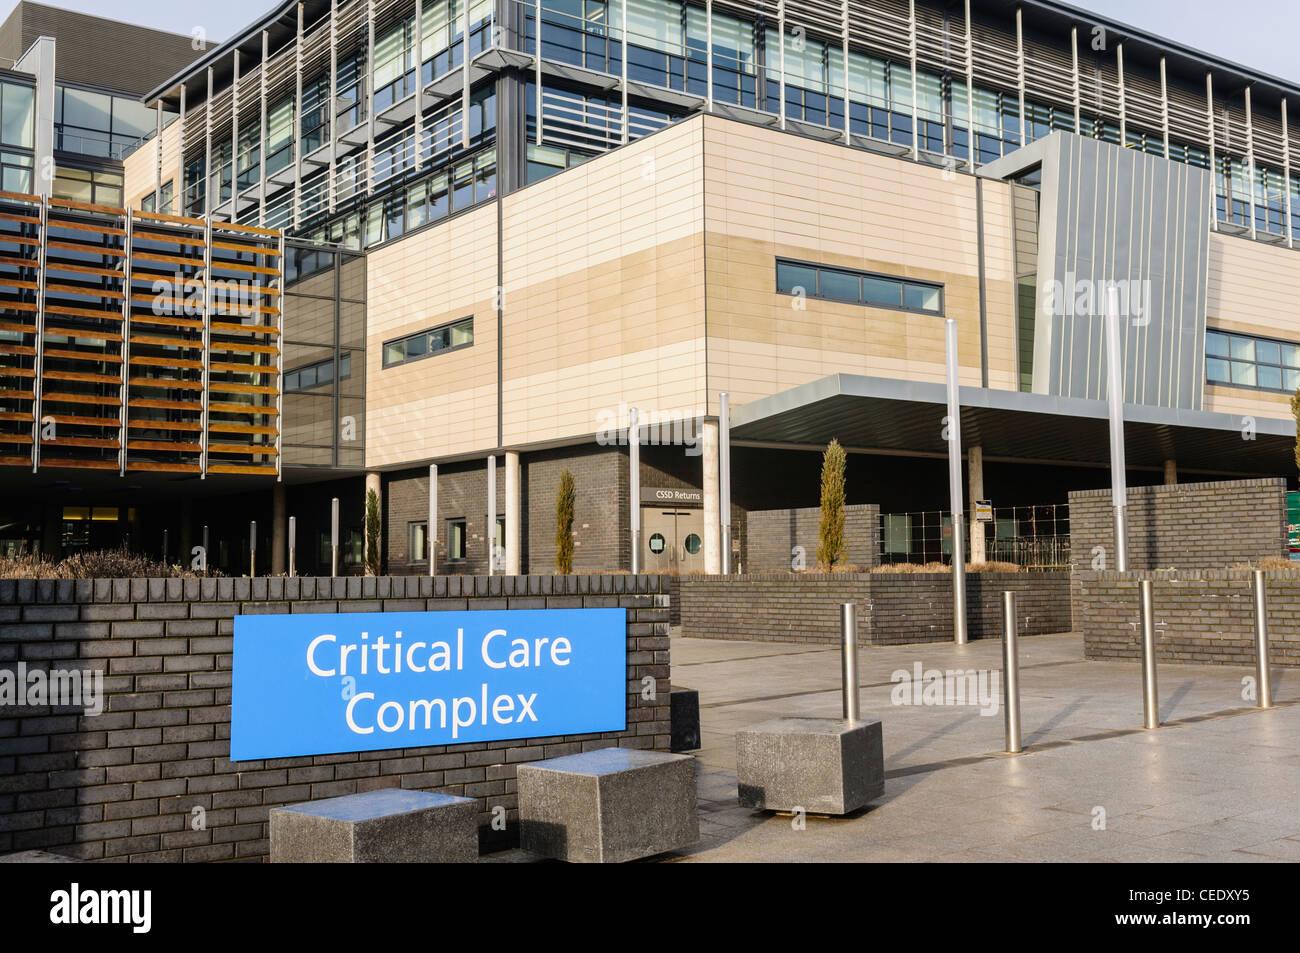 Critical Care Complex at the Ulster Hospital, Dundonald - Stock Image